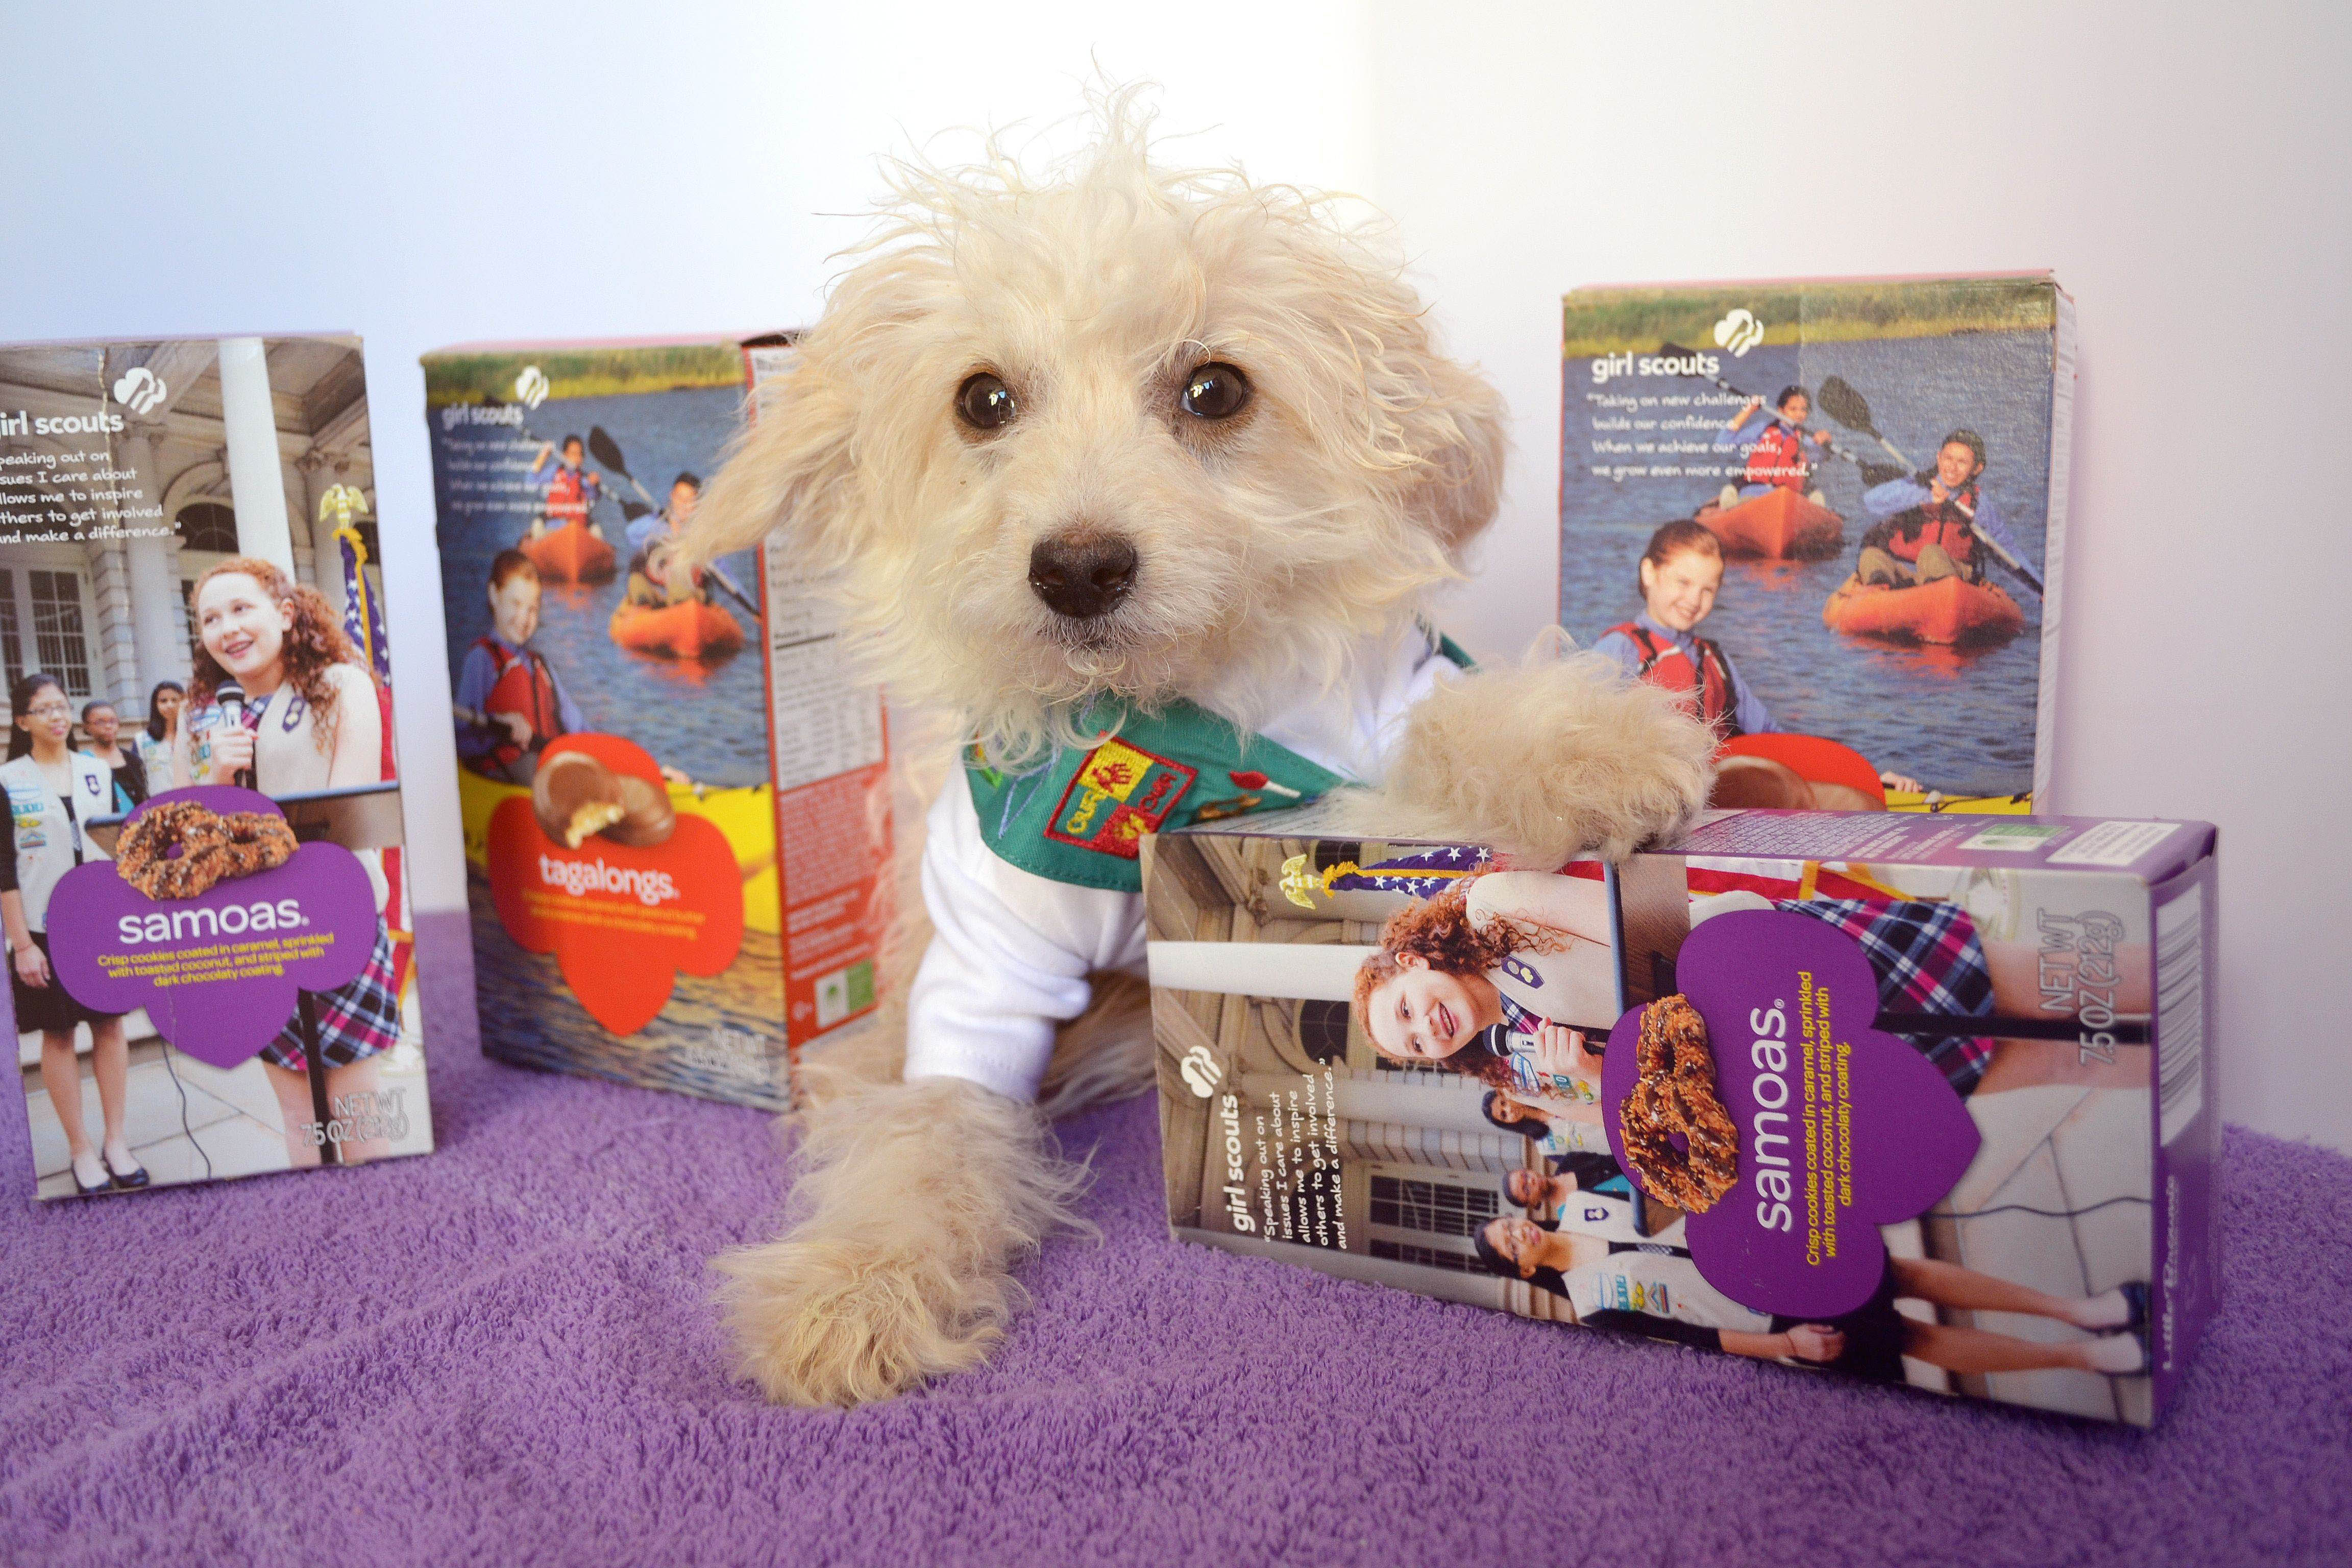 girl scout cookies puppies